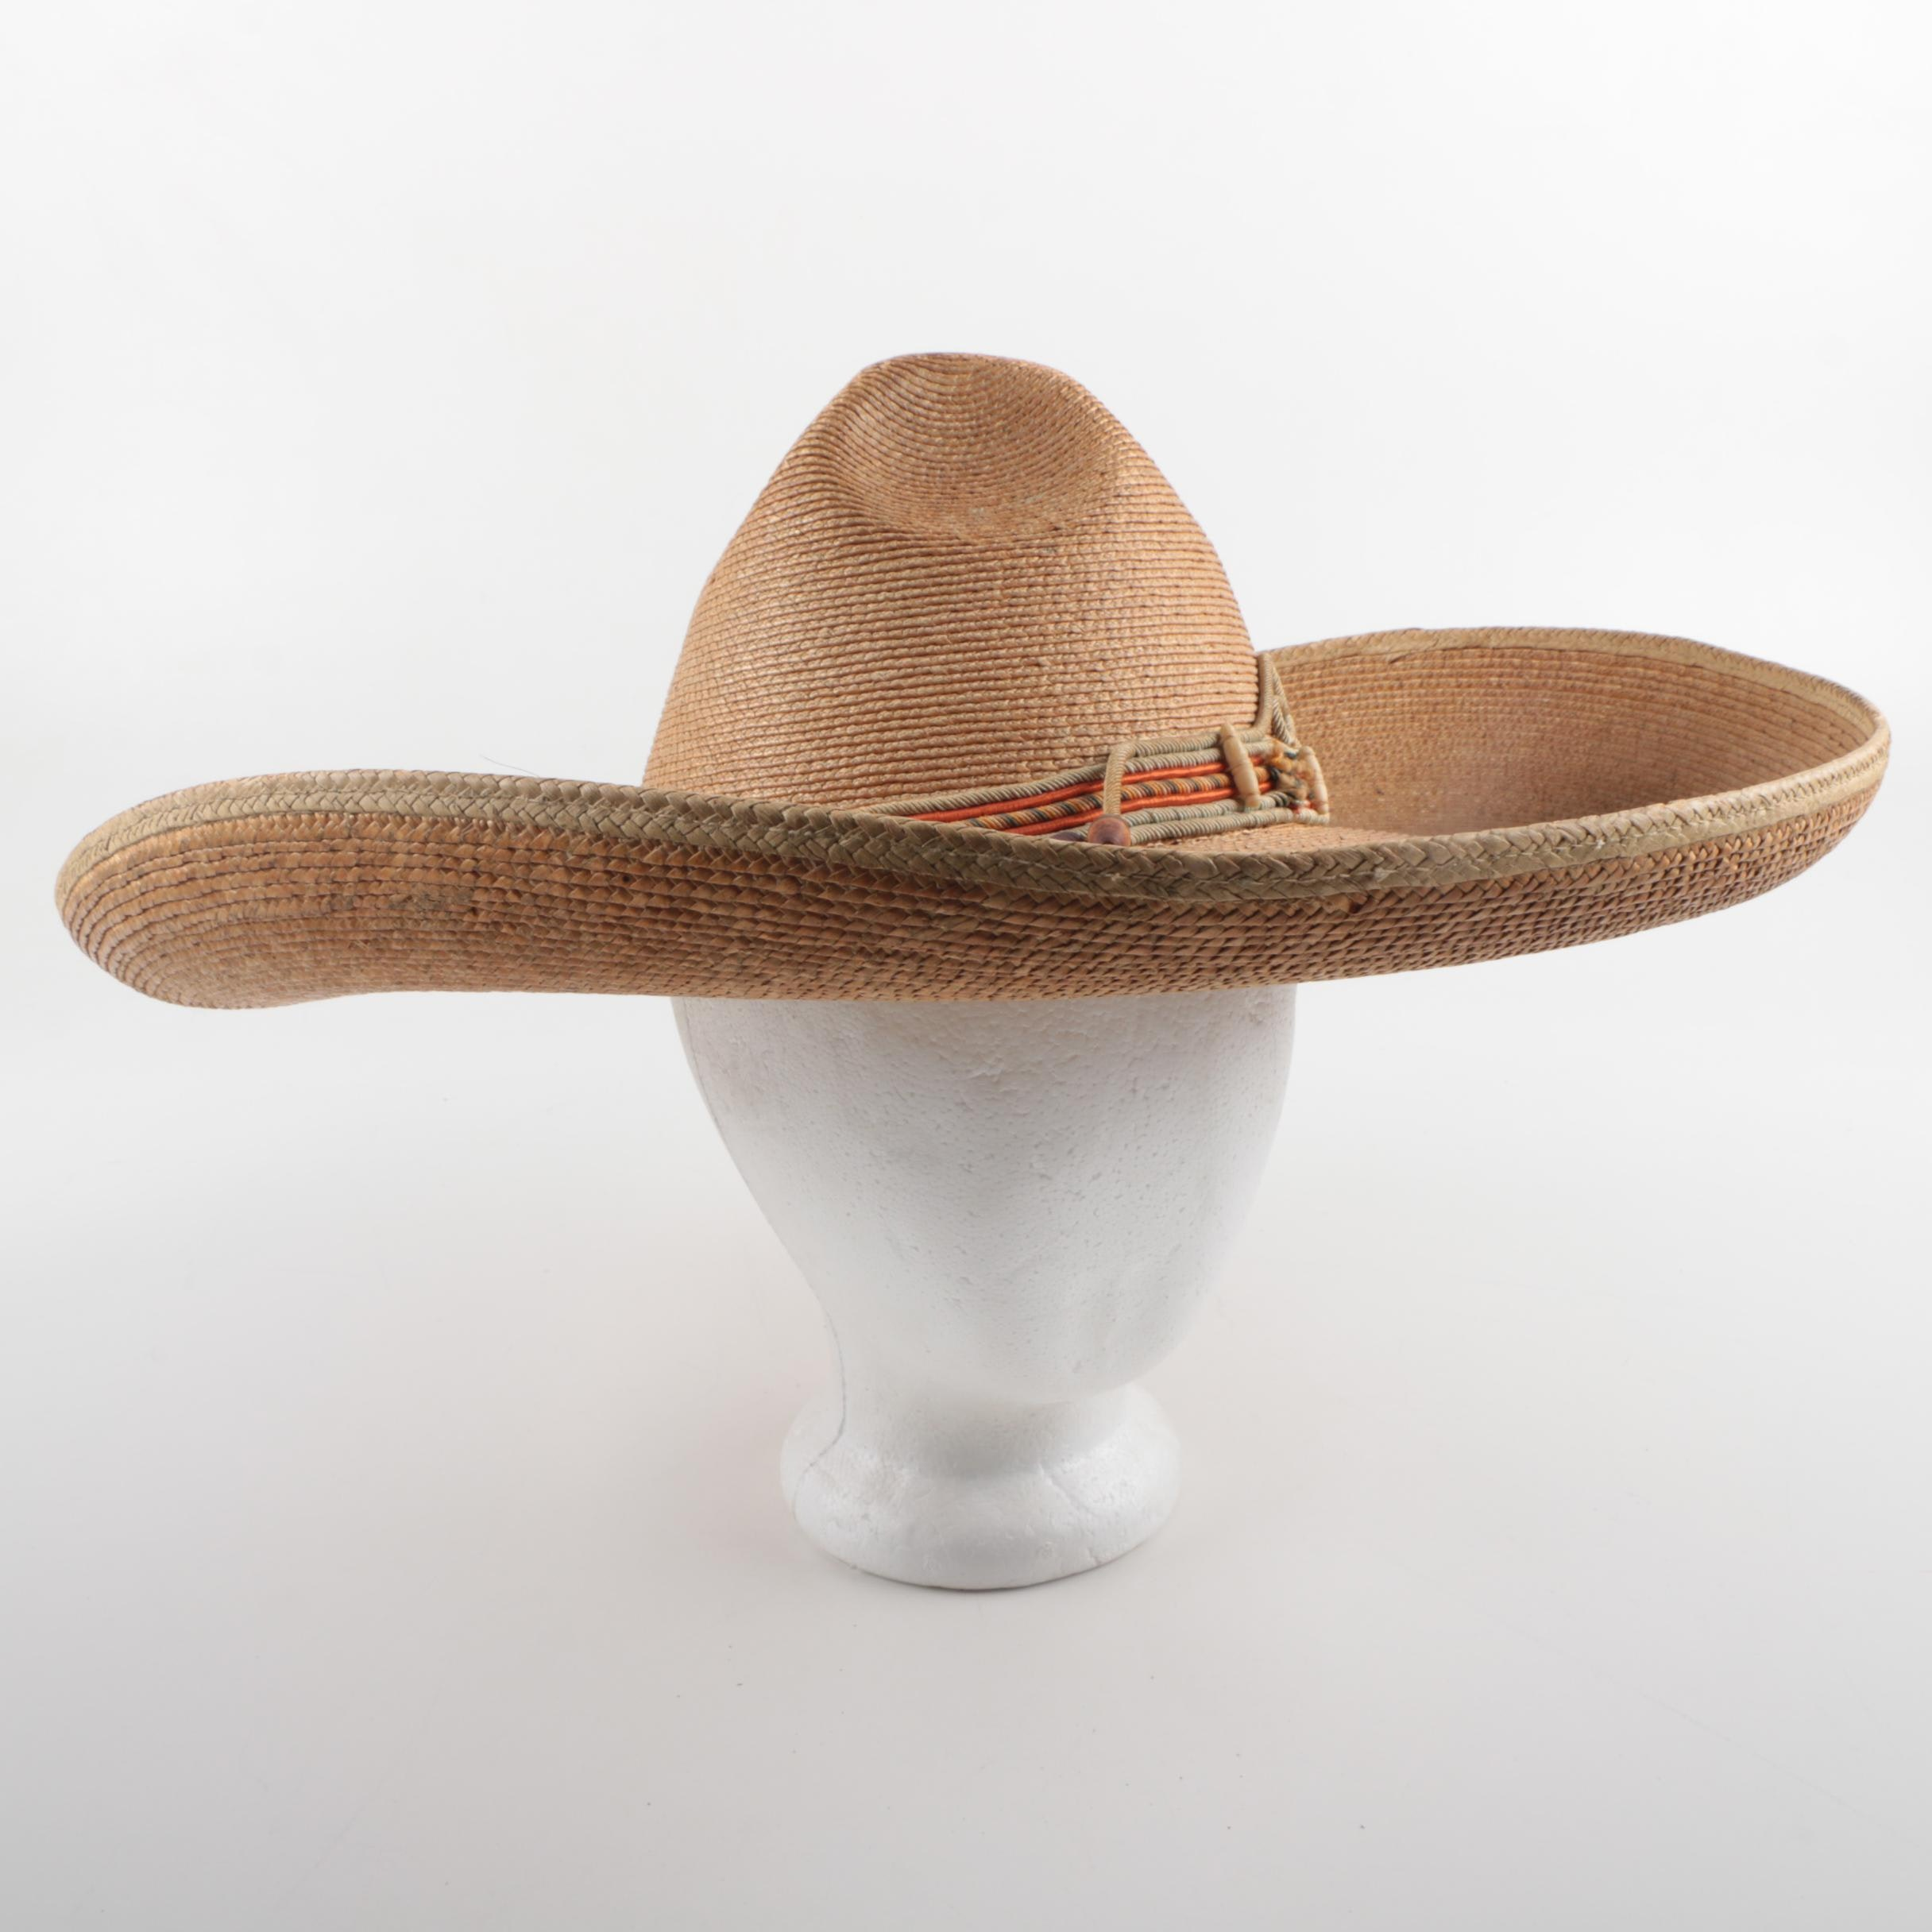 Sombrero Style Hat with Corded Hatband